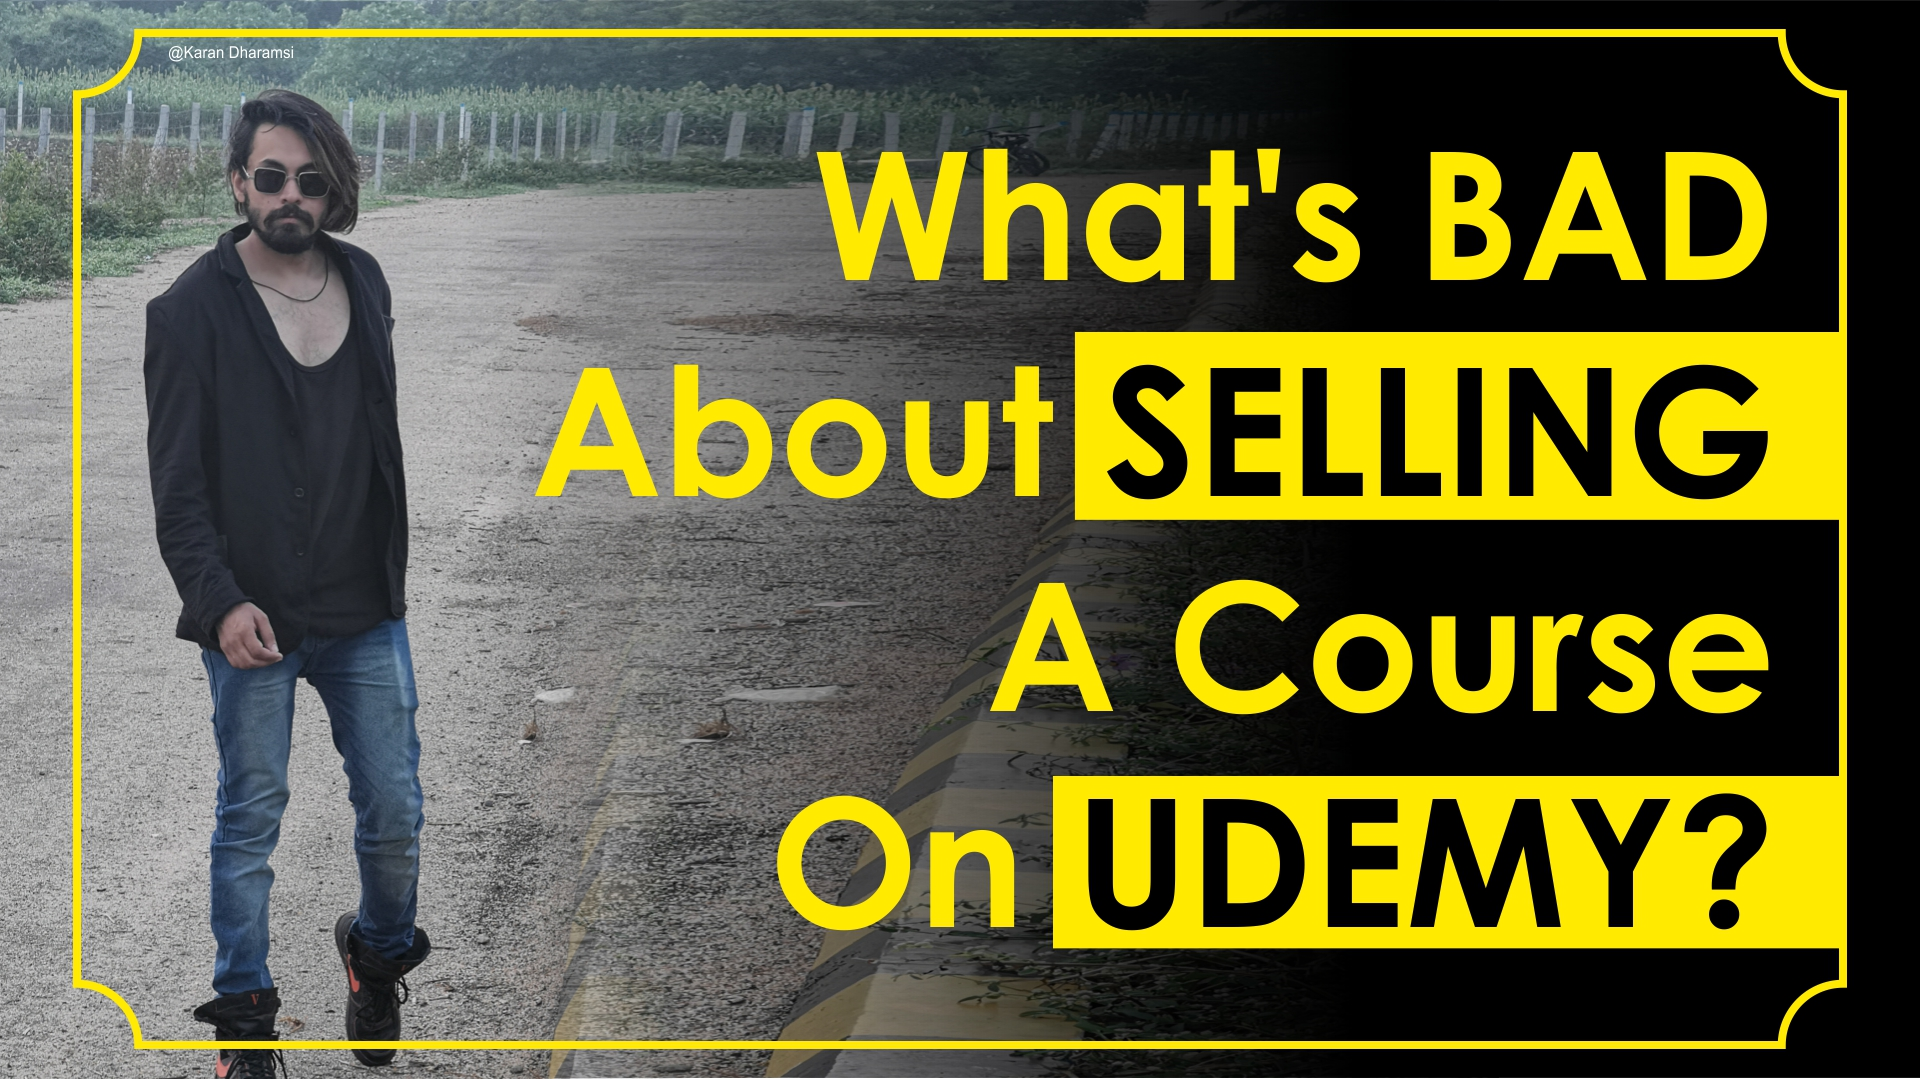 What's BAD About SELLING a Course on UDEMY Karan Dharamsi The Marketing Nerdz